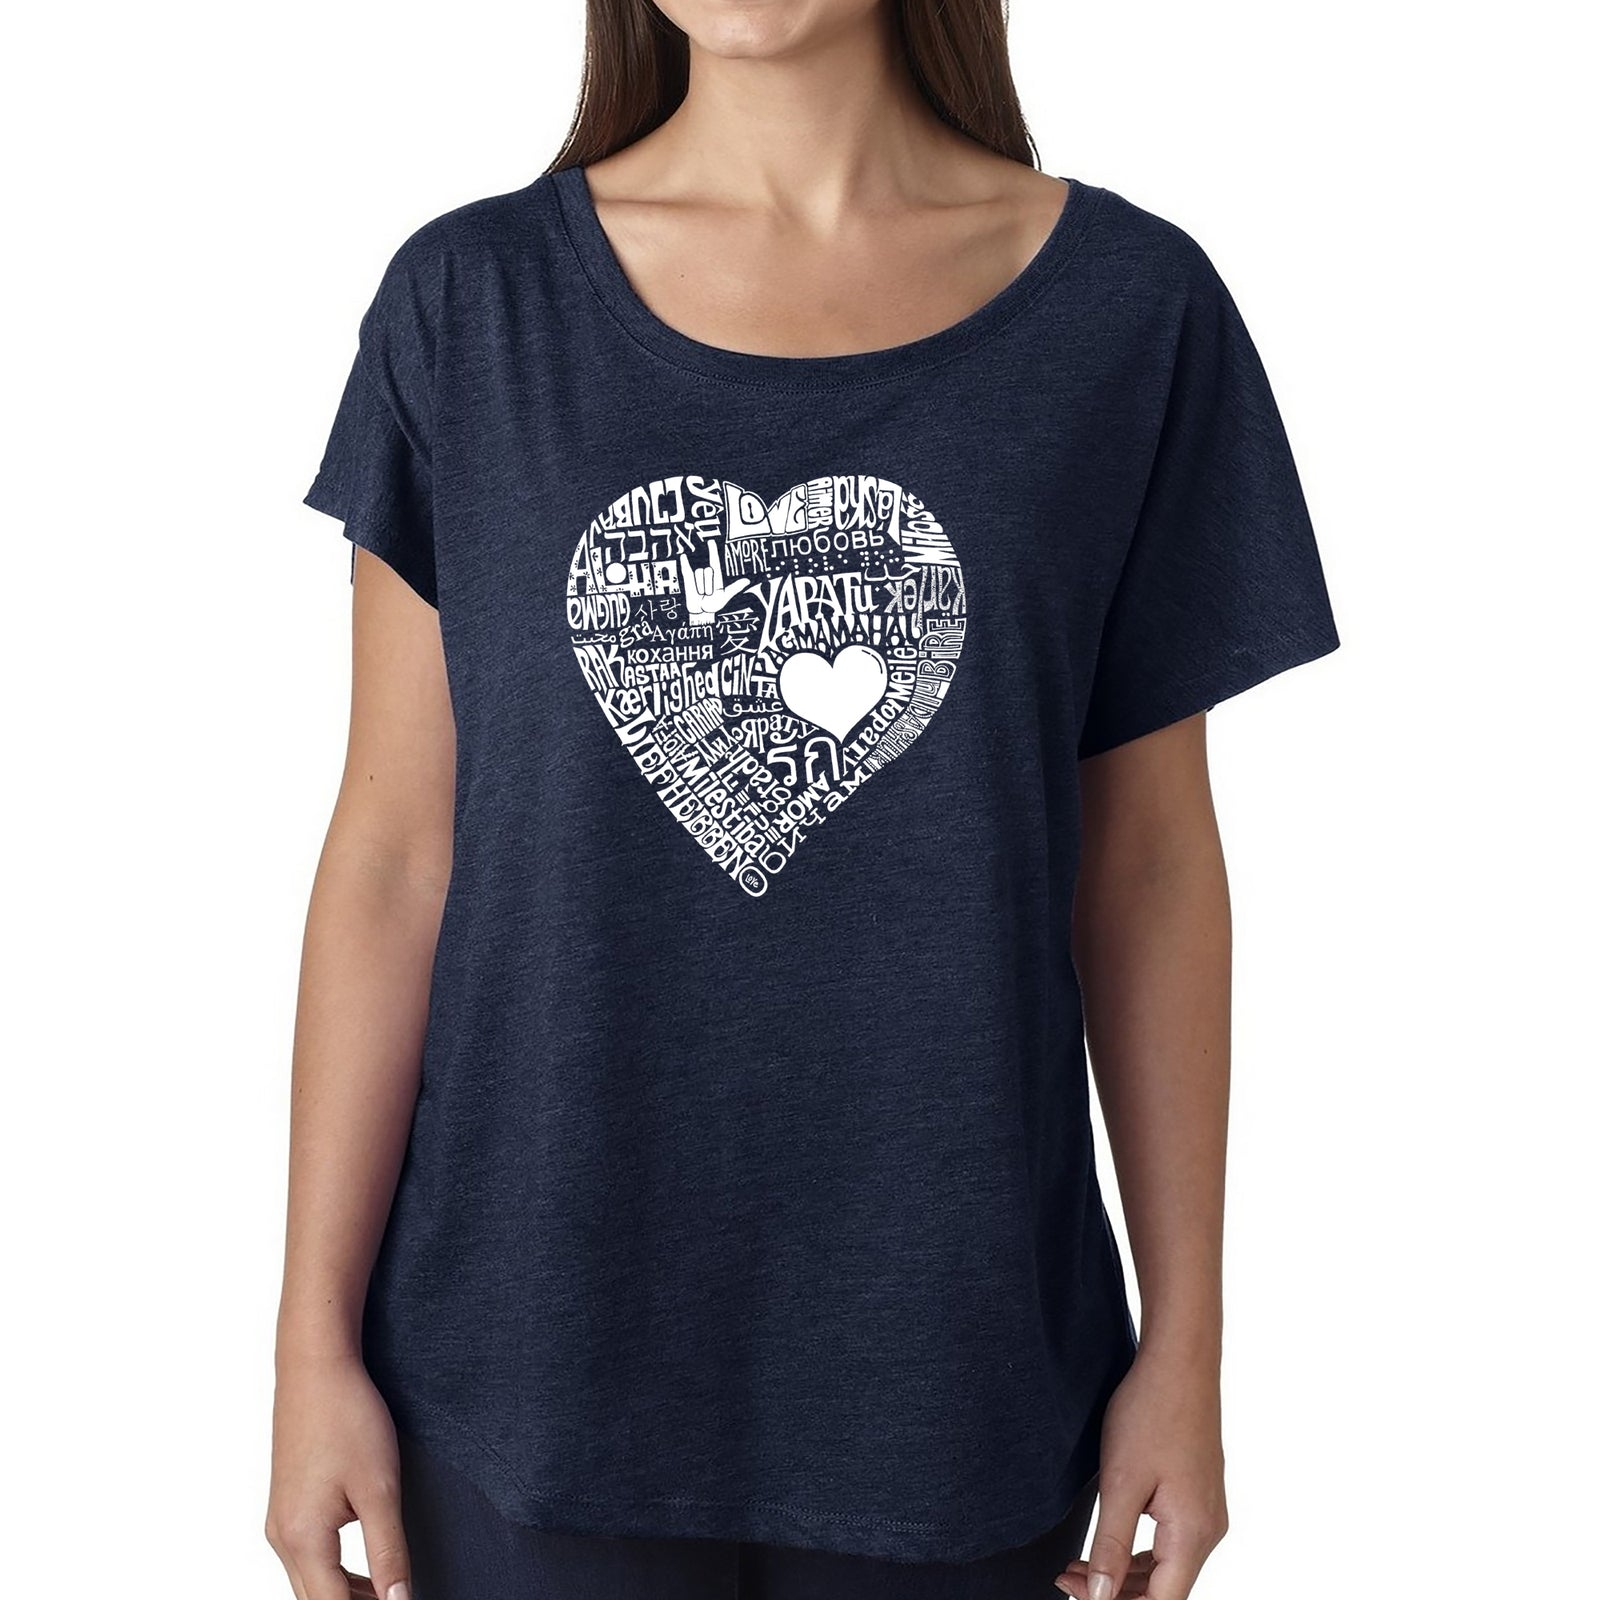 Women's Loose Fit Dolman Cut Word Art Shirt - LOVE IN 44 DIFFERENT LANGUAGES